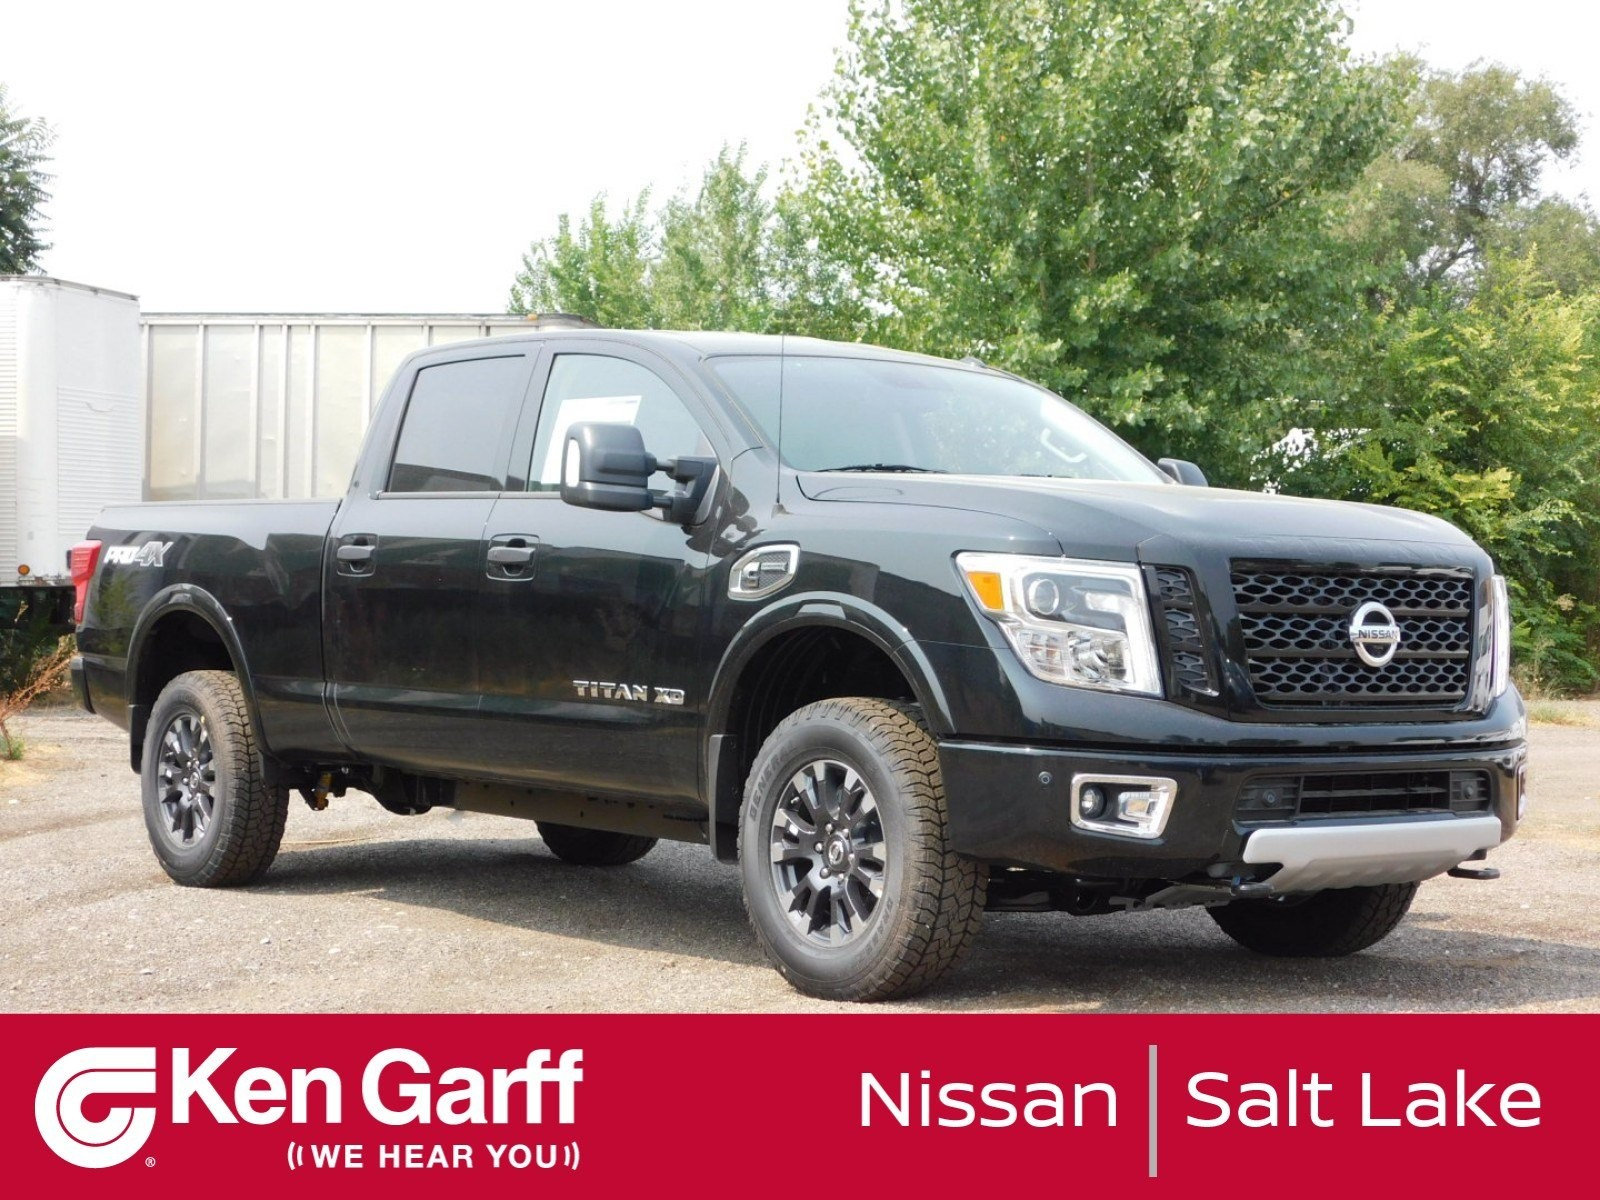 2006 Nissan Titan Parts Diagram New 2018 Nissan Titan Xd Pro 4x Crew Cab Pickup In Salt Lake City Of 2006 Nissan Titan Parts Diagram 2006 Altima Parts Diagram Wiring Diagram Database •